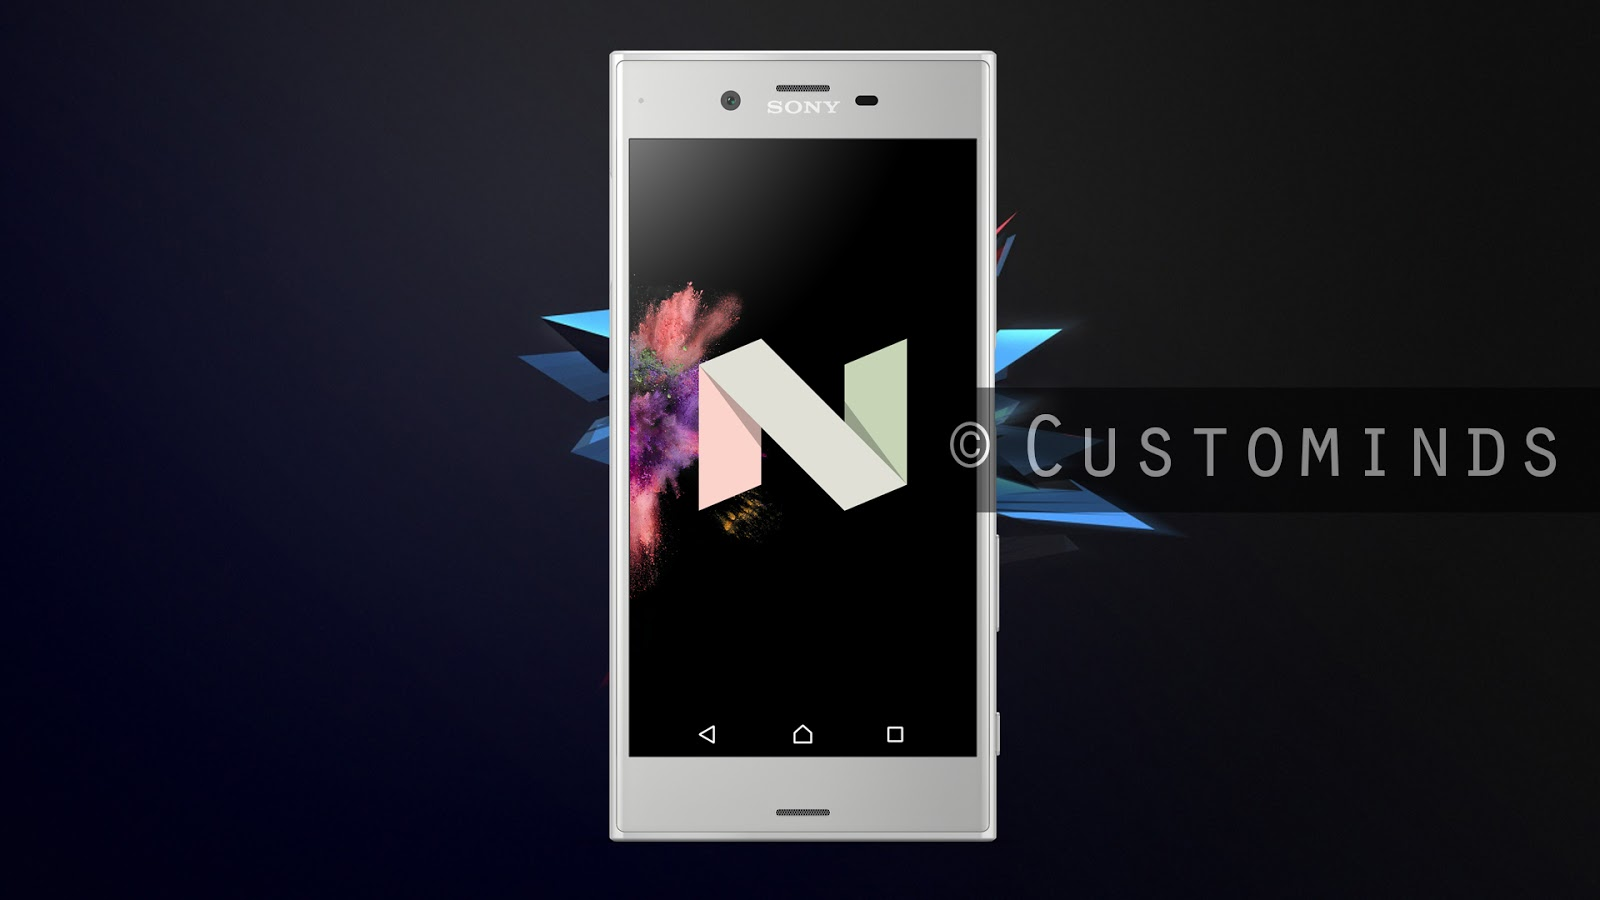 Sony Xperia Z5 [E6683] Android 7 0 Nougat - Features and